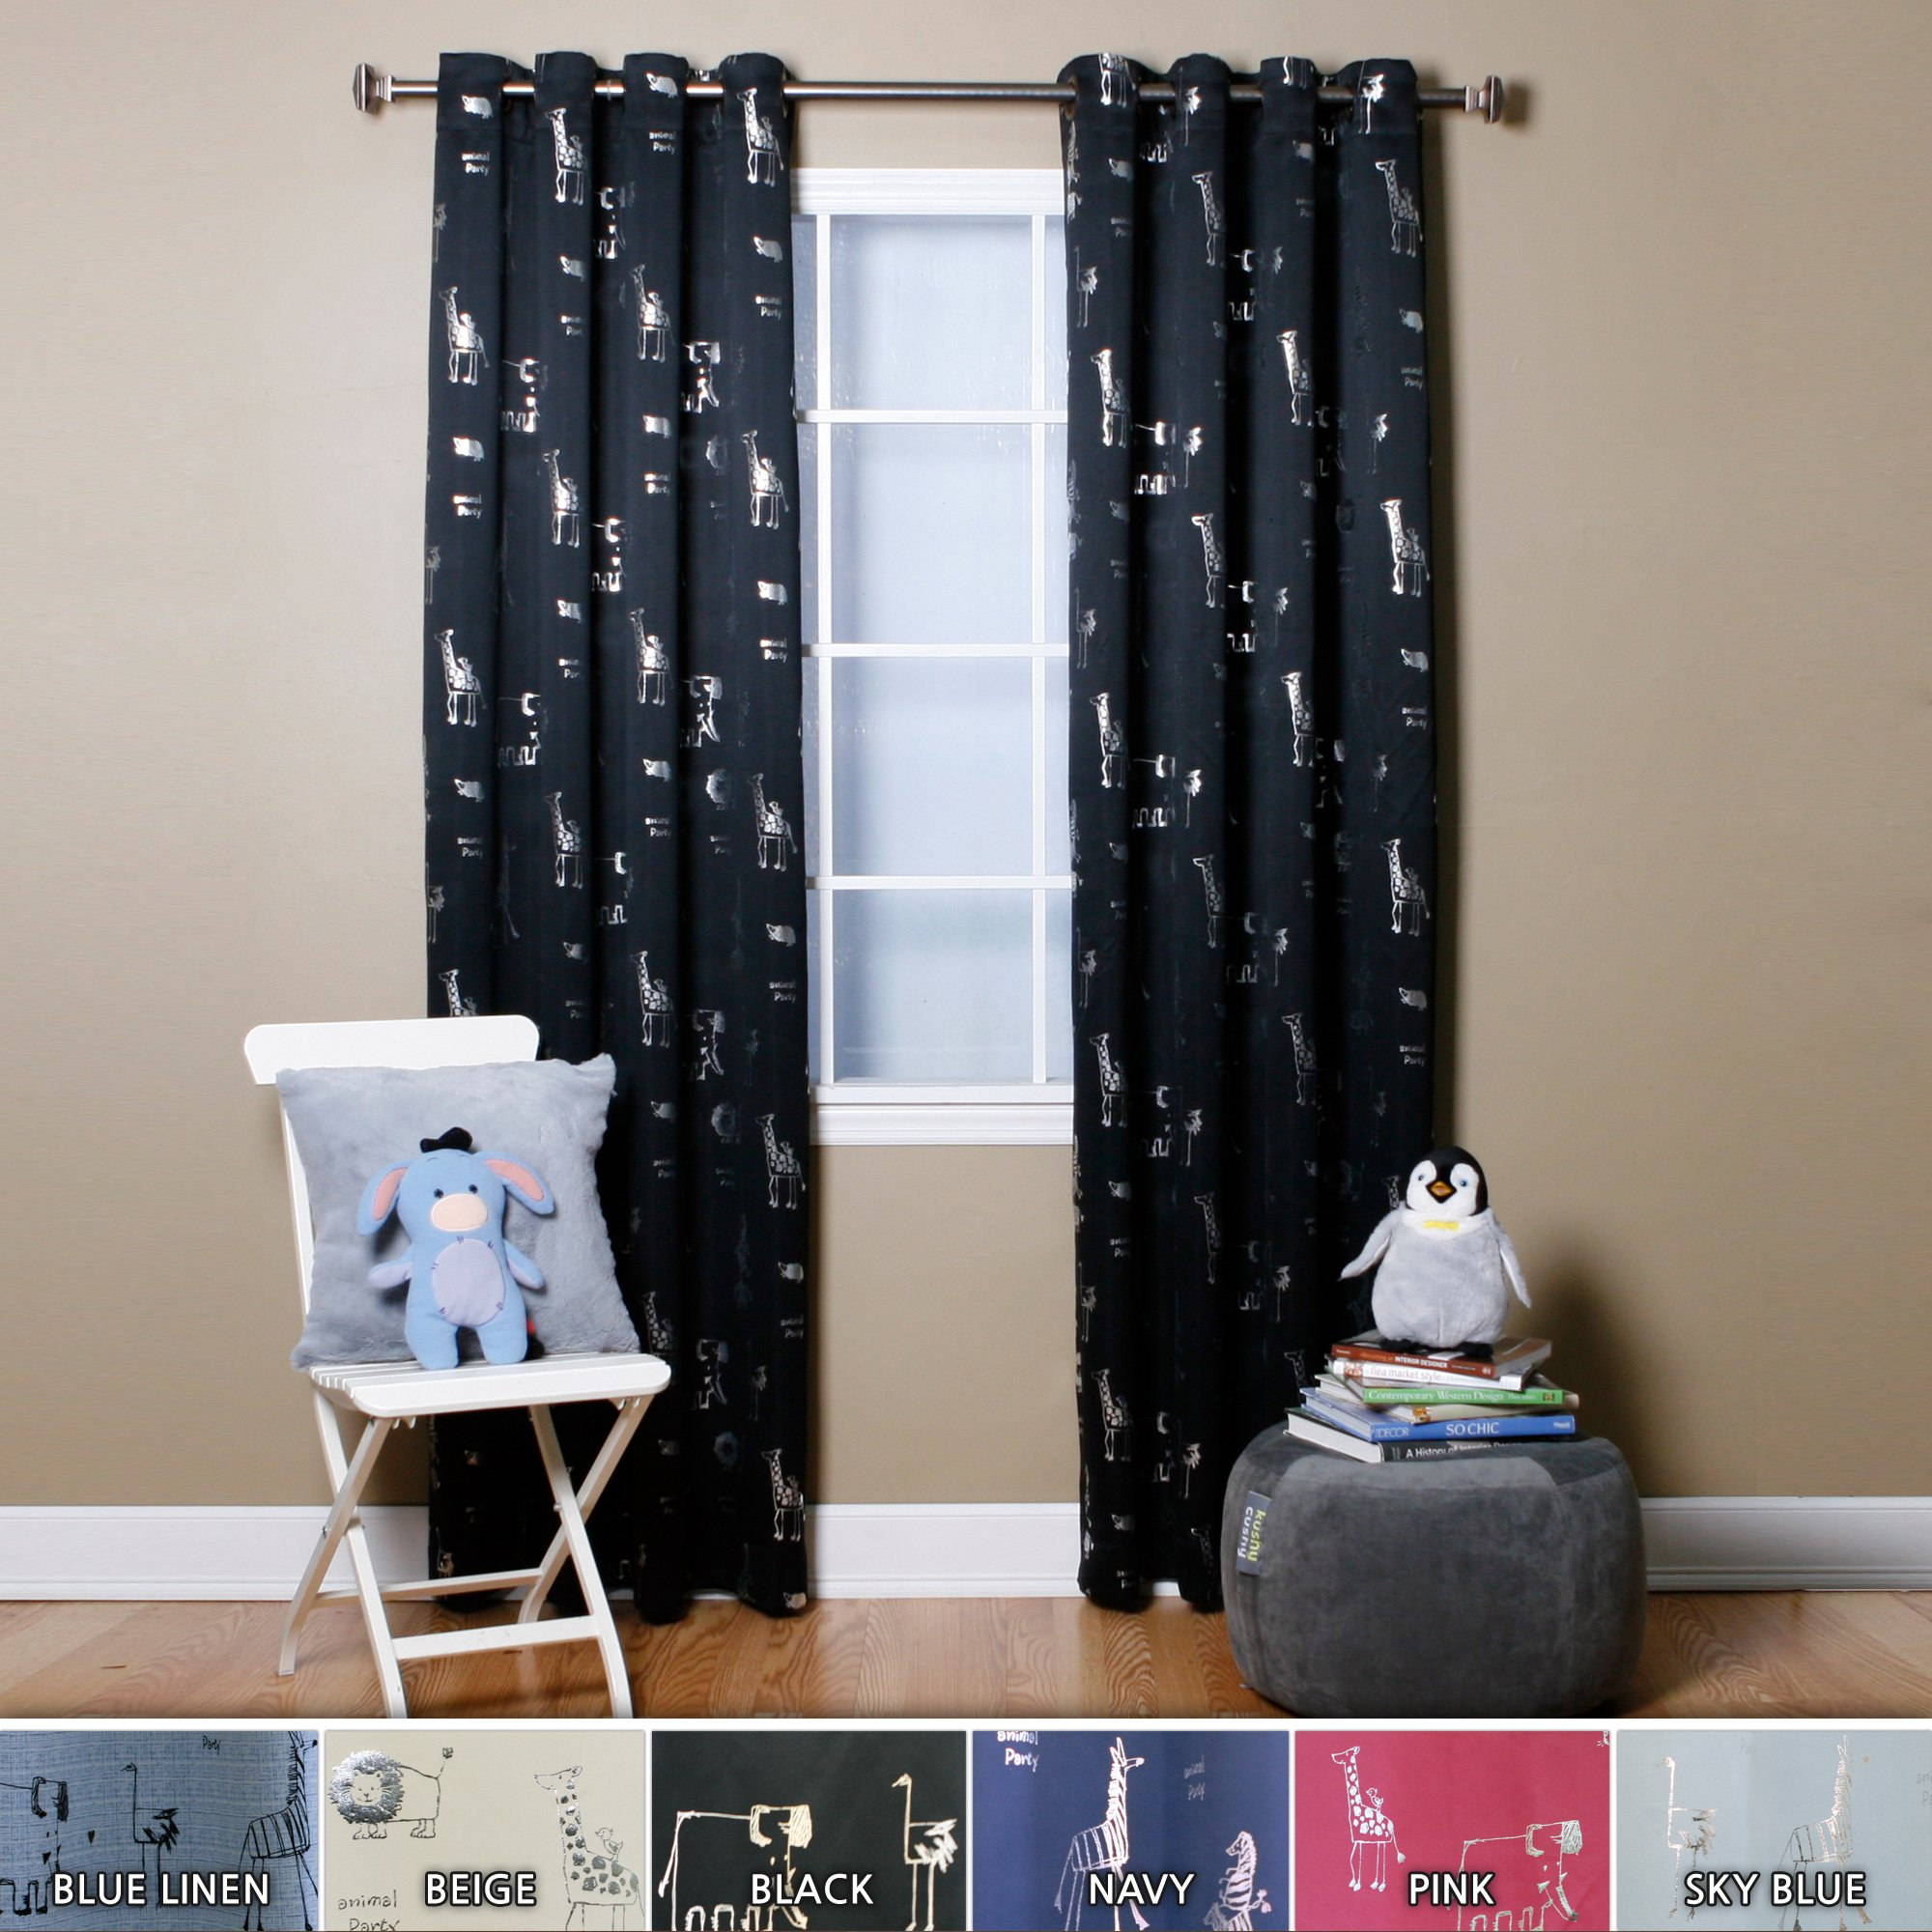 Best Home Fashion Room Darkening Animal Print Curtains - Stainless Steel Nickel Grommet Top - Black - 52'' W x 84'' L - (Set of 2 Panels)